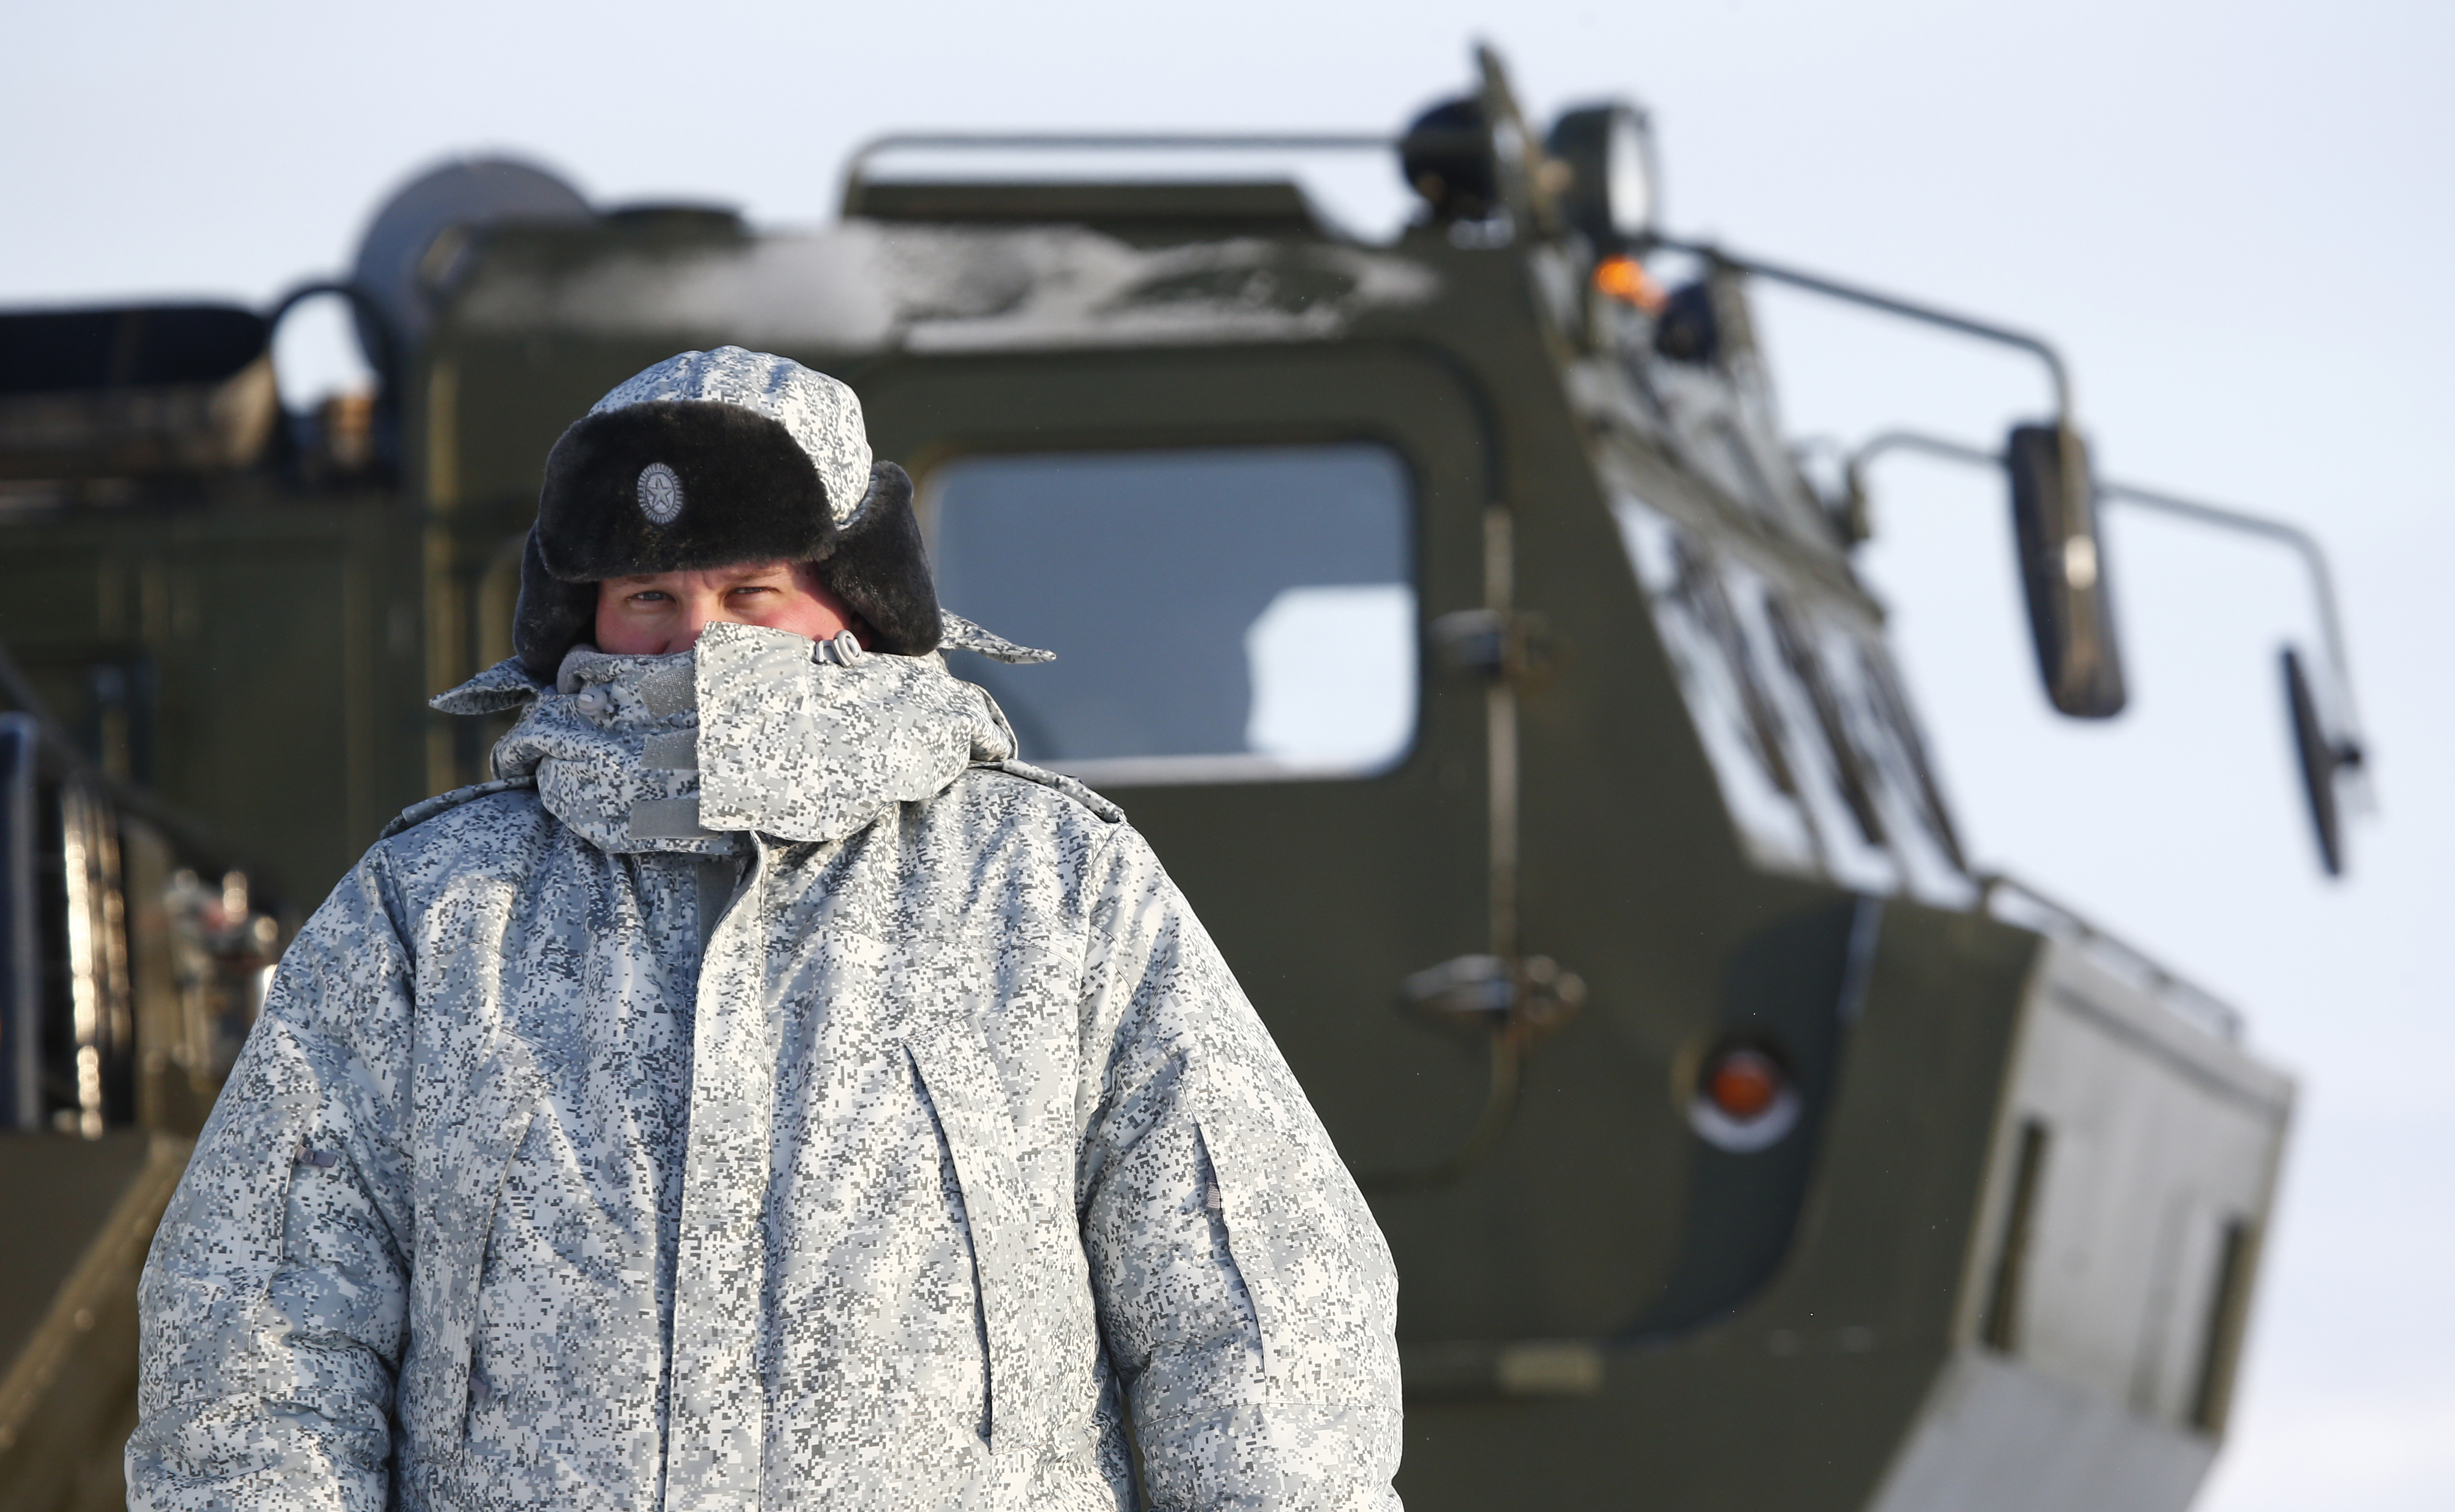 A Russian serviceman stands in front of an off-road military vehicle at the Nagurskoye military base in Alexandra Land on the remote Arctic archipelago of Franz Josef Land. (Sergei Karpukhin/Reuters)